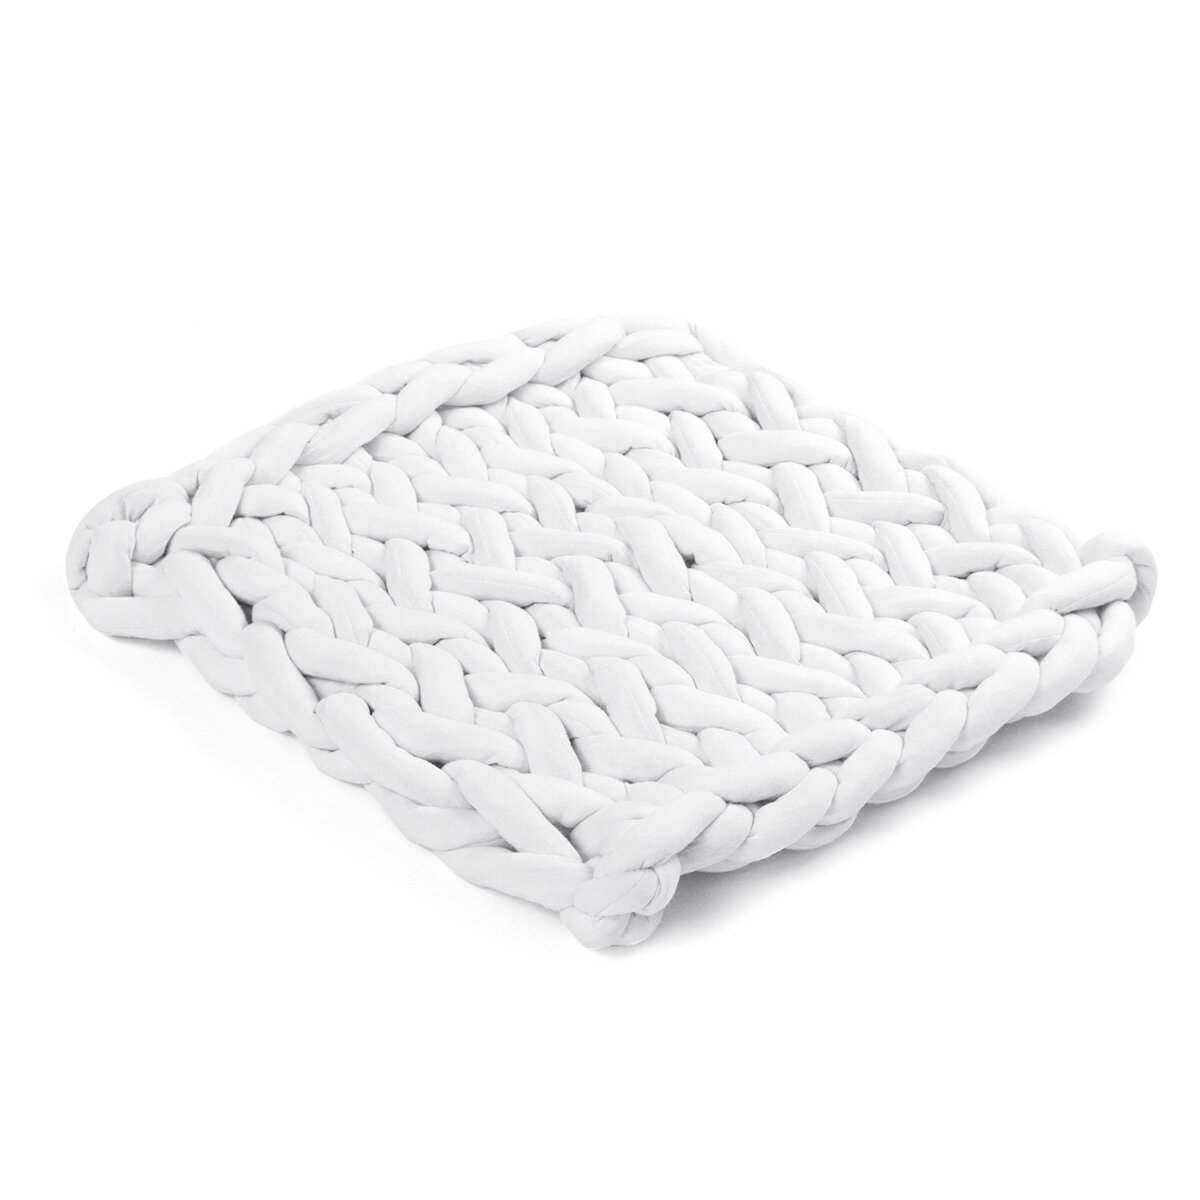 50 x 50cm Handmade Knitted Blanket Cotton Soft Washable Lint free Throw Multicolored Thick Thread Blankets - 8